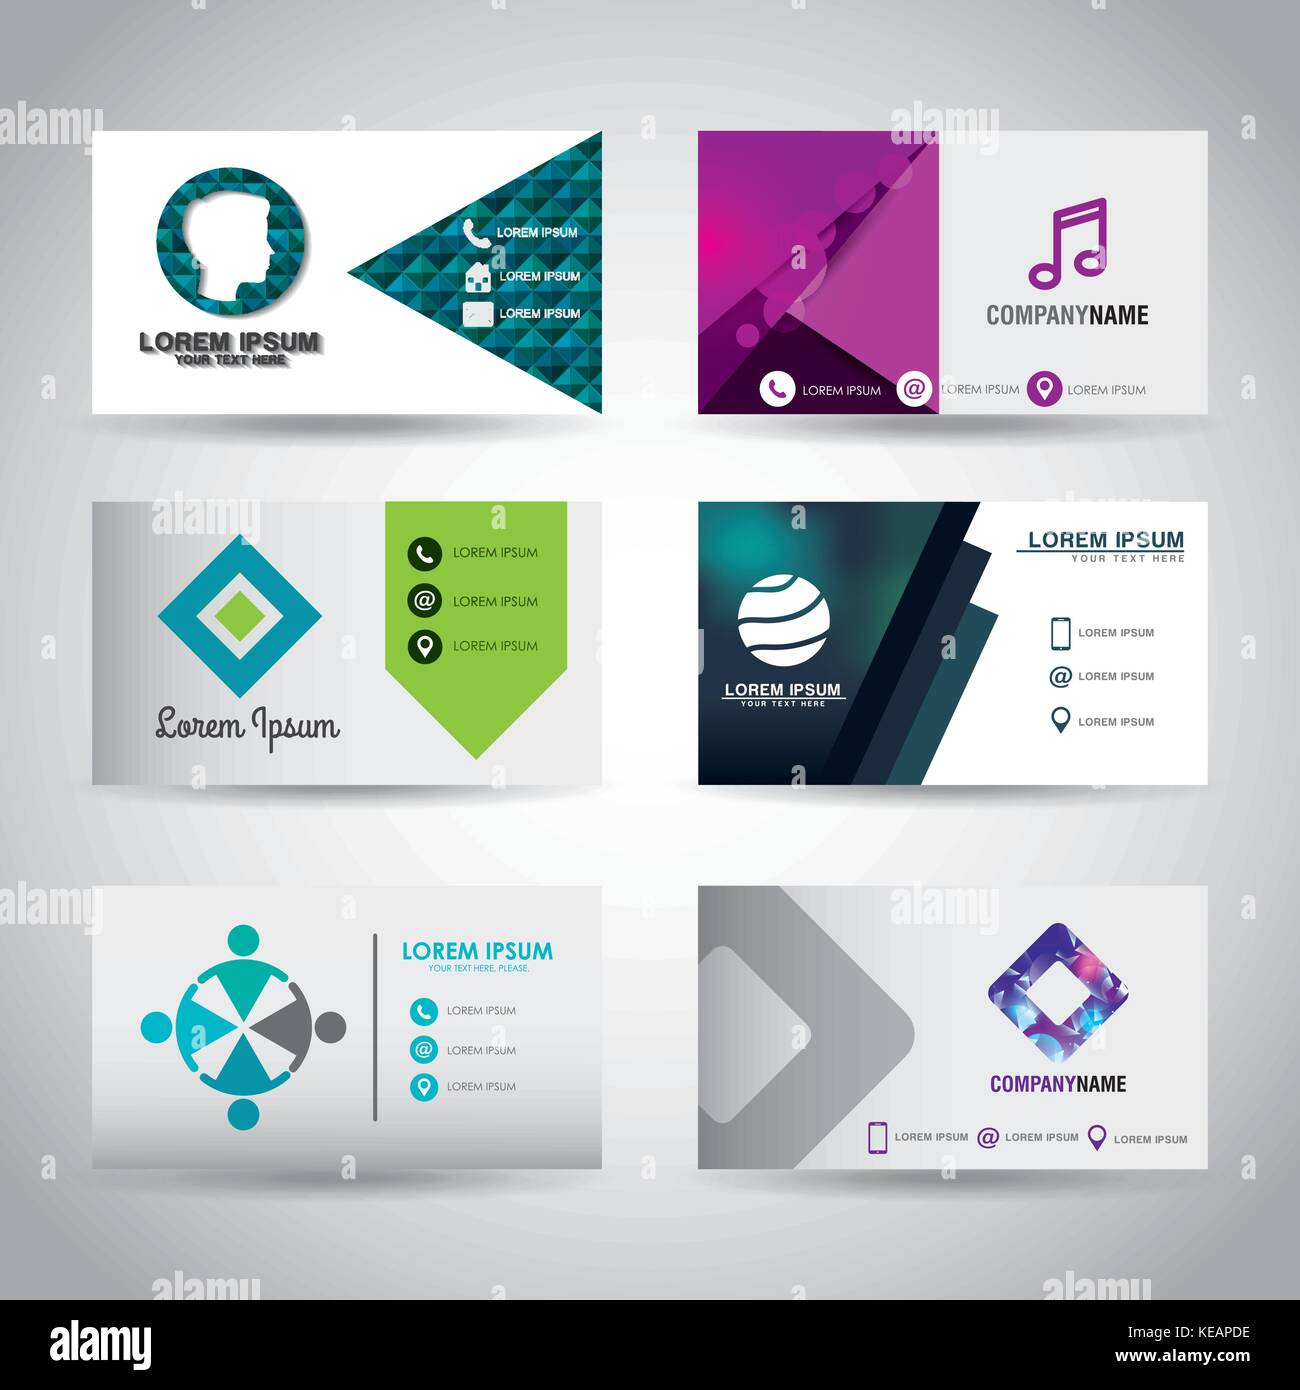 Set of themed business card presentation templates stock vector art set of themed business card presentation templates accmission Choice Image